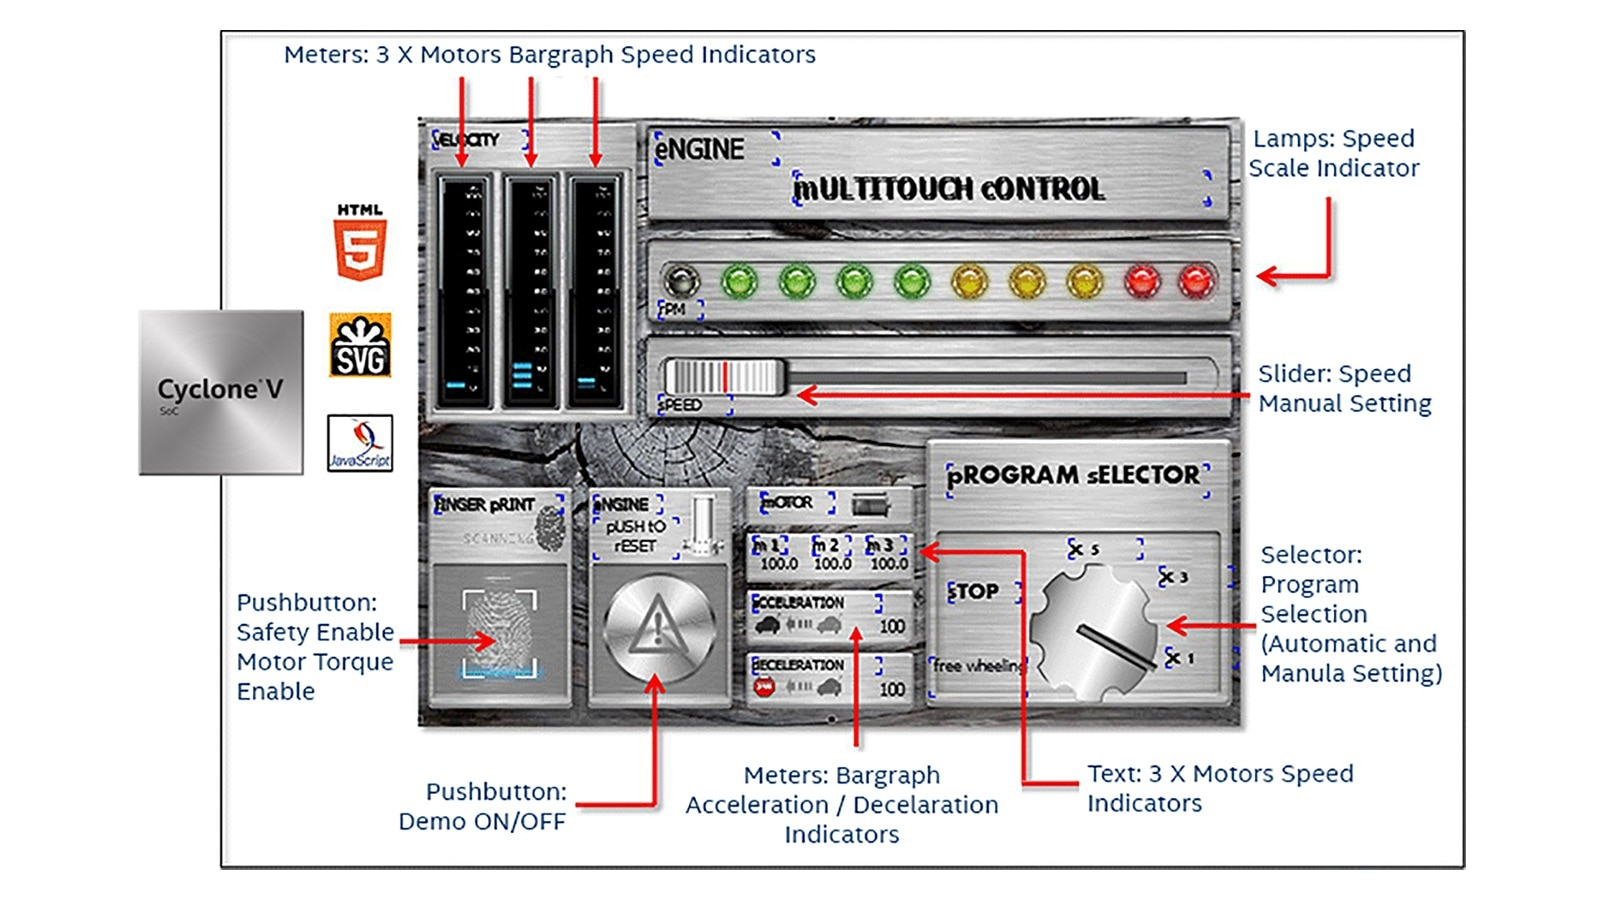 Industrial Automation Fpga Applications Intel Cyclone Engine Diagram Rich Human Machine Interface Hmi Including 3 D Graphical User Interfaces Gui With Touchscreens Is Ubiquitous In Todays Plc Designs Enabling Ease Of